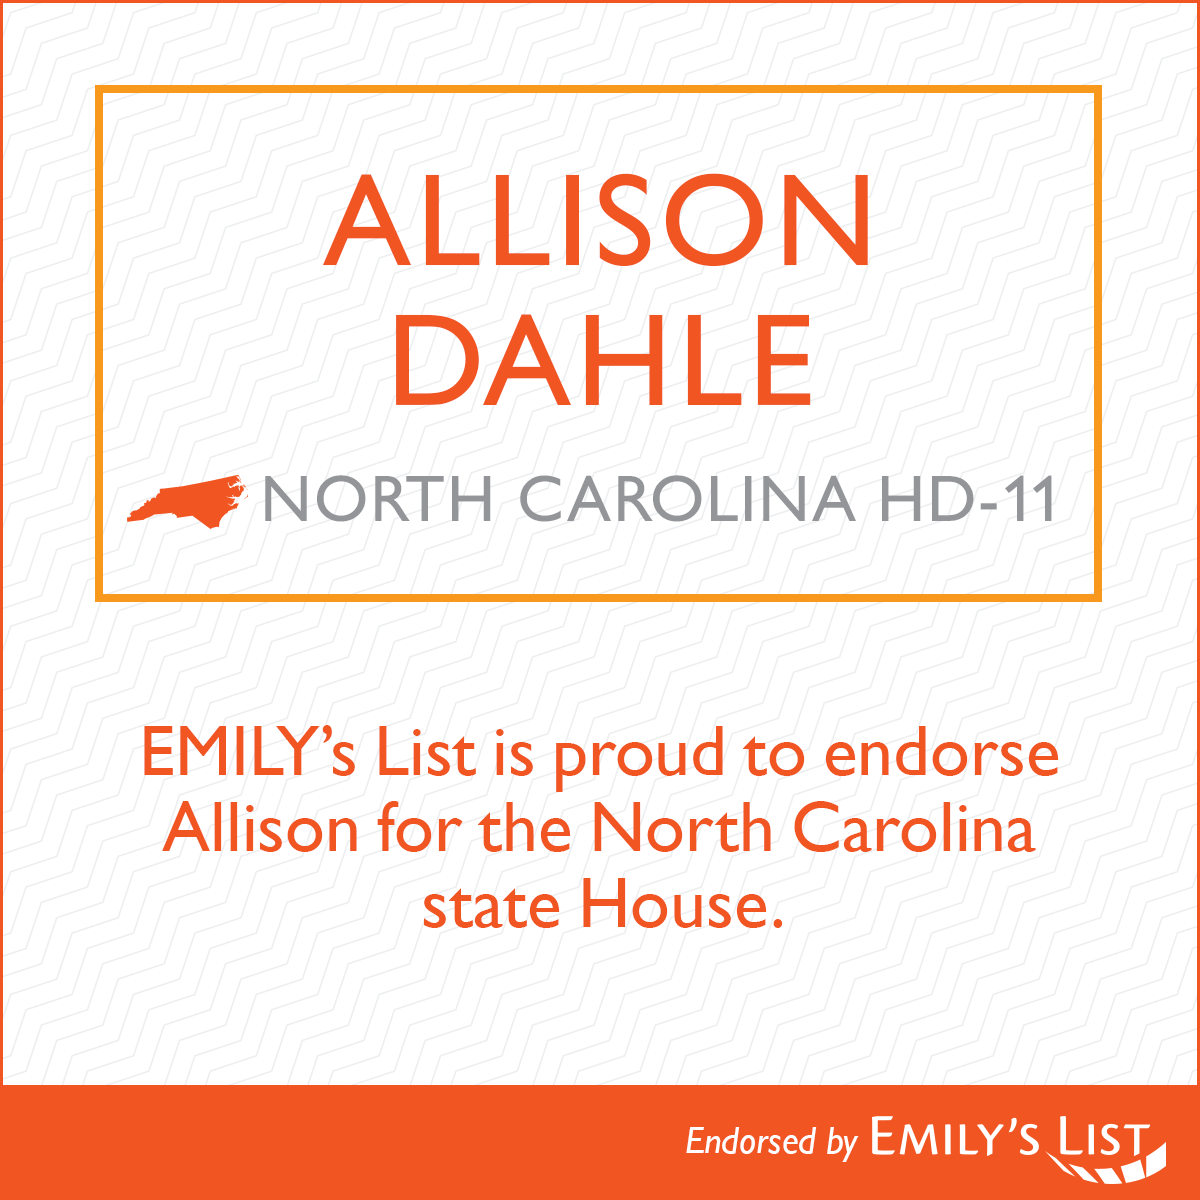 """In her extensive career fighting for people with disabilities and working for women's rights, Allison Dahle has shown a passion for protecting marginalized communities time and again,"" said Geri Prado, senior director of state and local campaigns at EMILY's List. ""We are proud to endorse Allison for the North Carolina state House."""